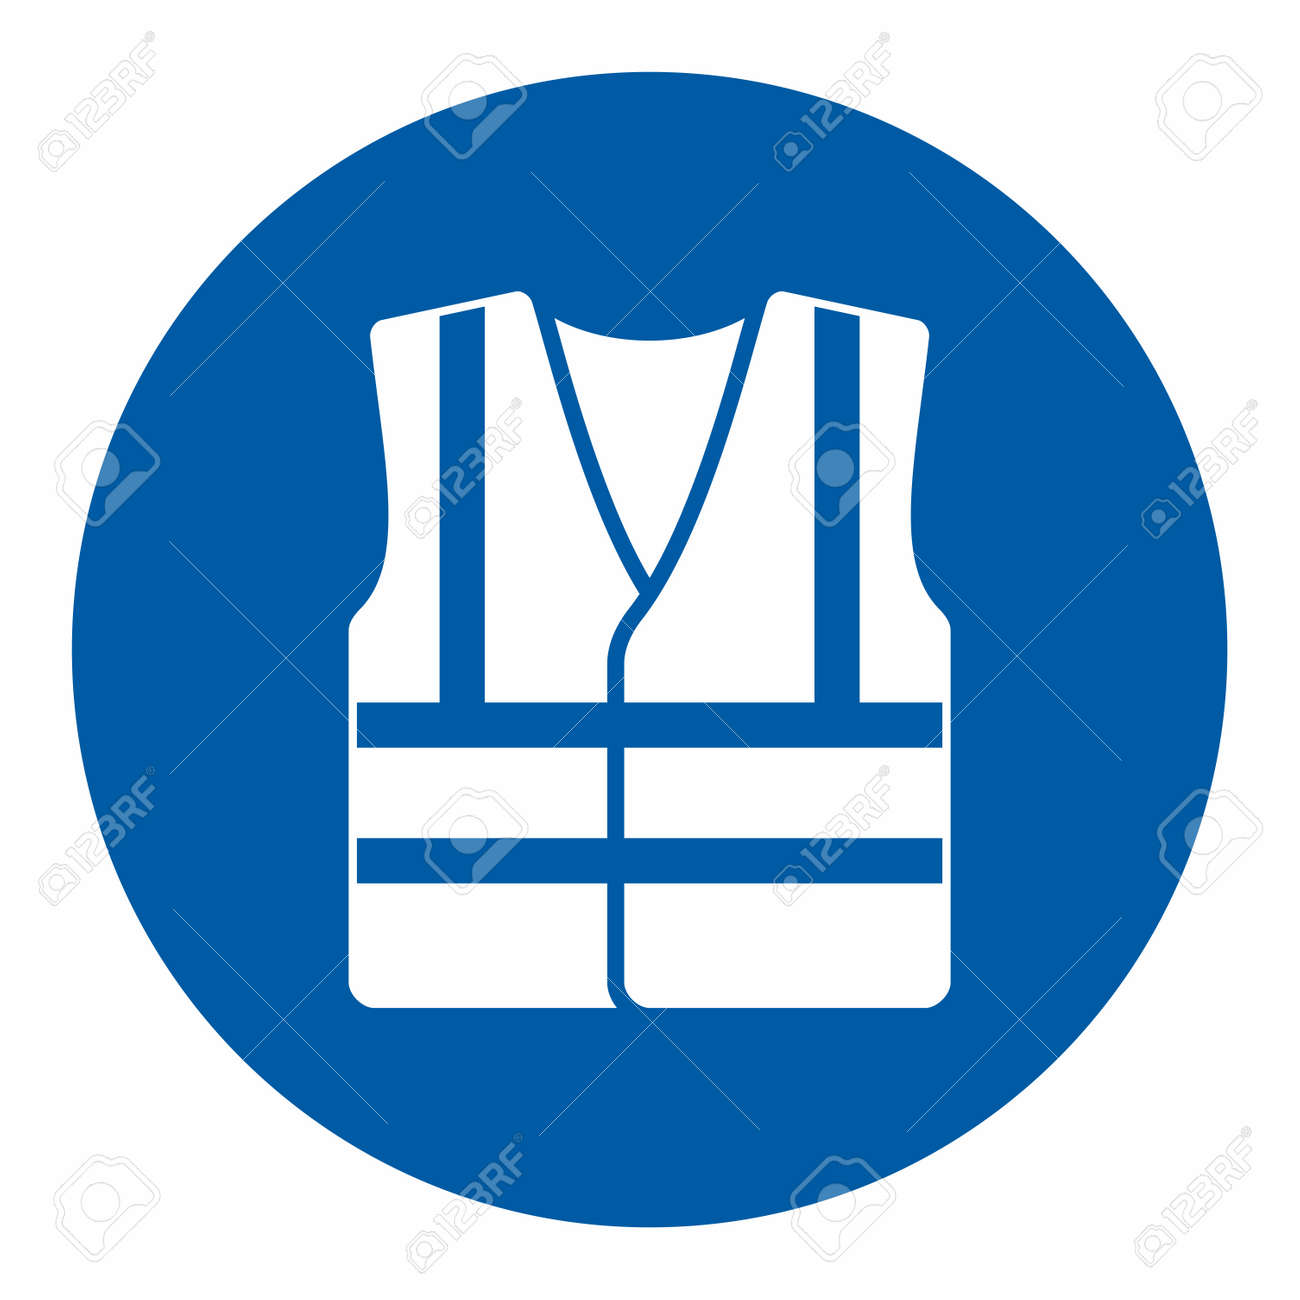 Mandatory action sign, Wear high visibility clothing - 71895978